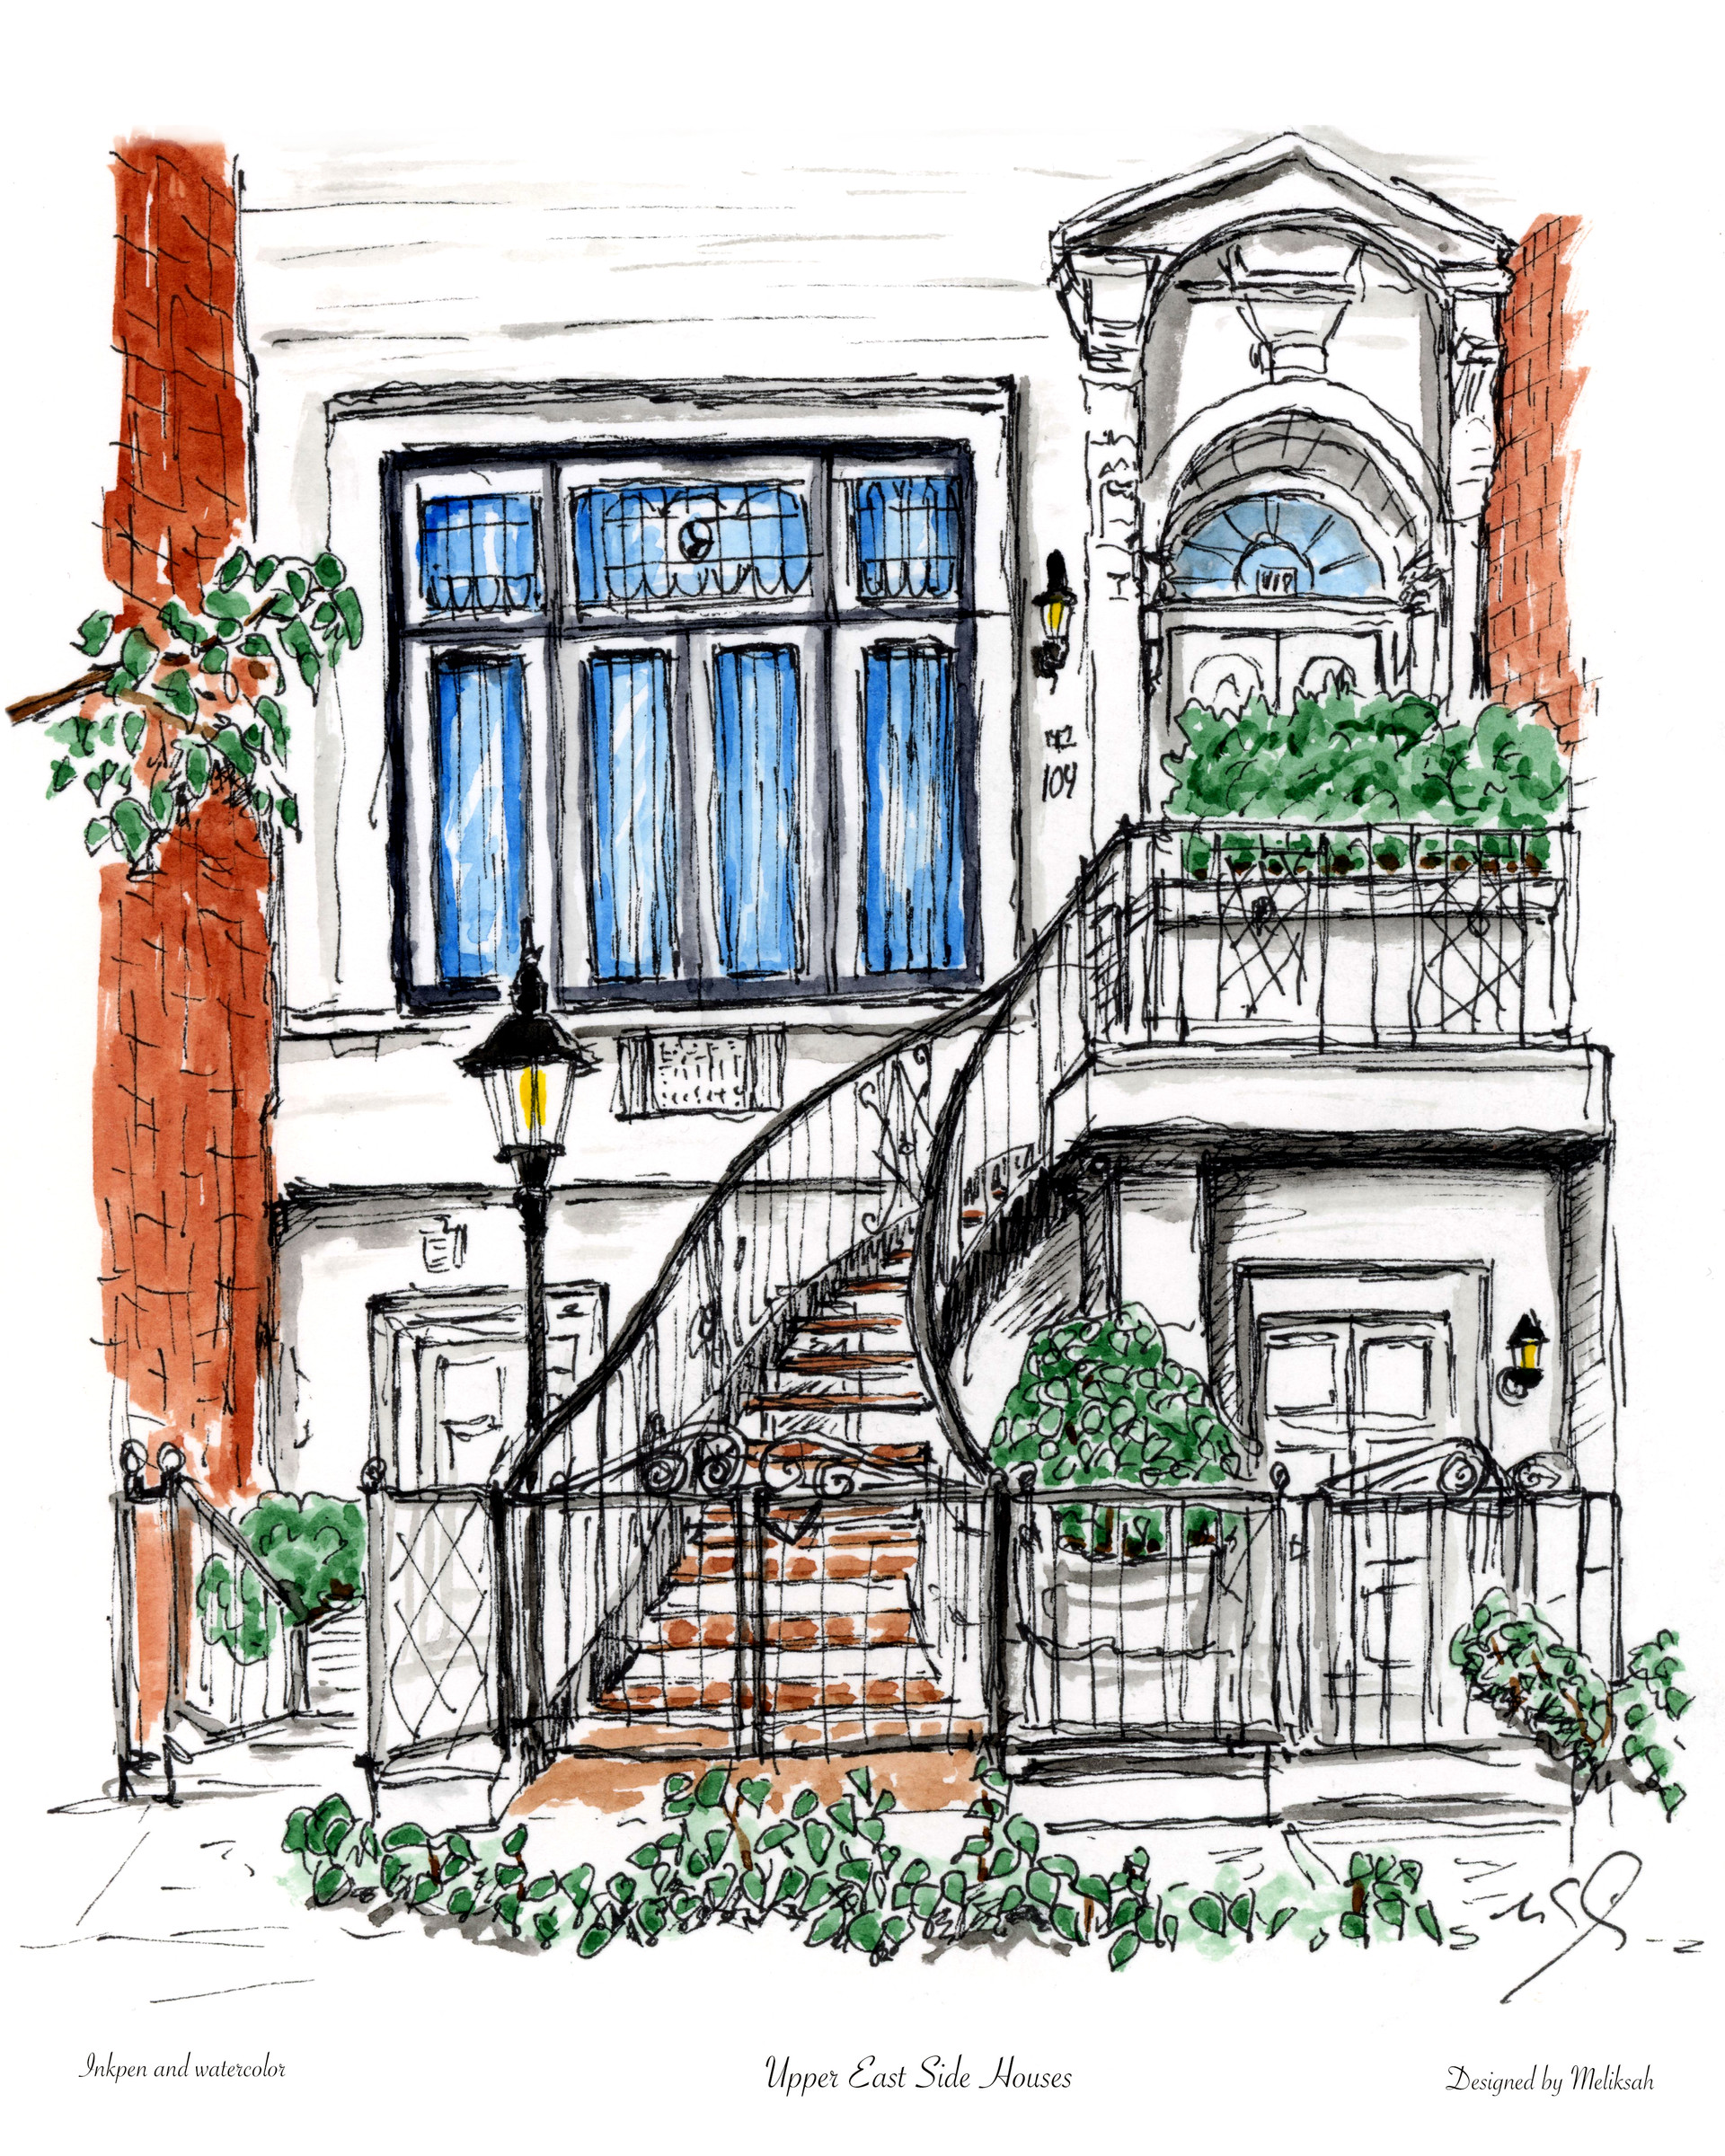 uppereastside ouses8x10.jpg